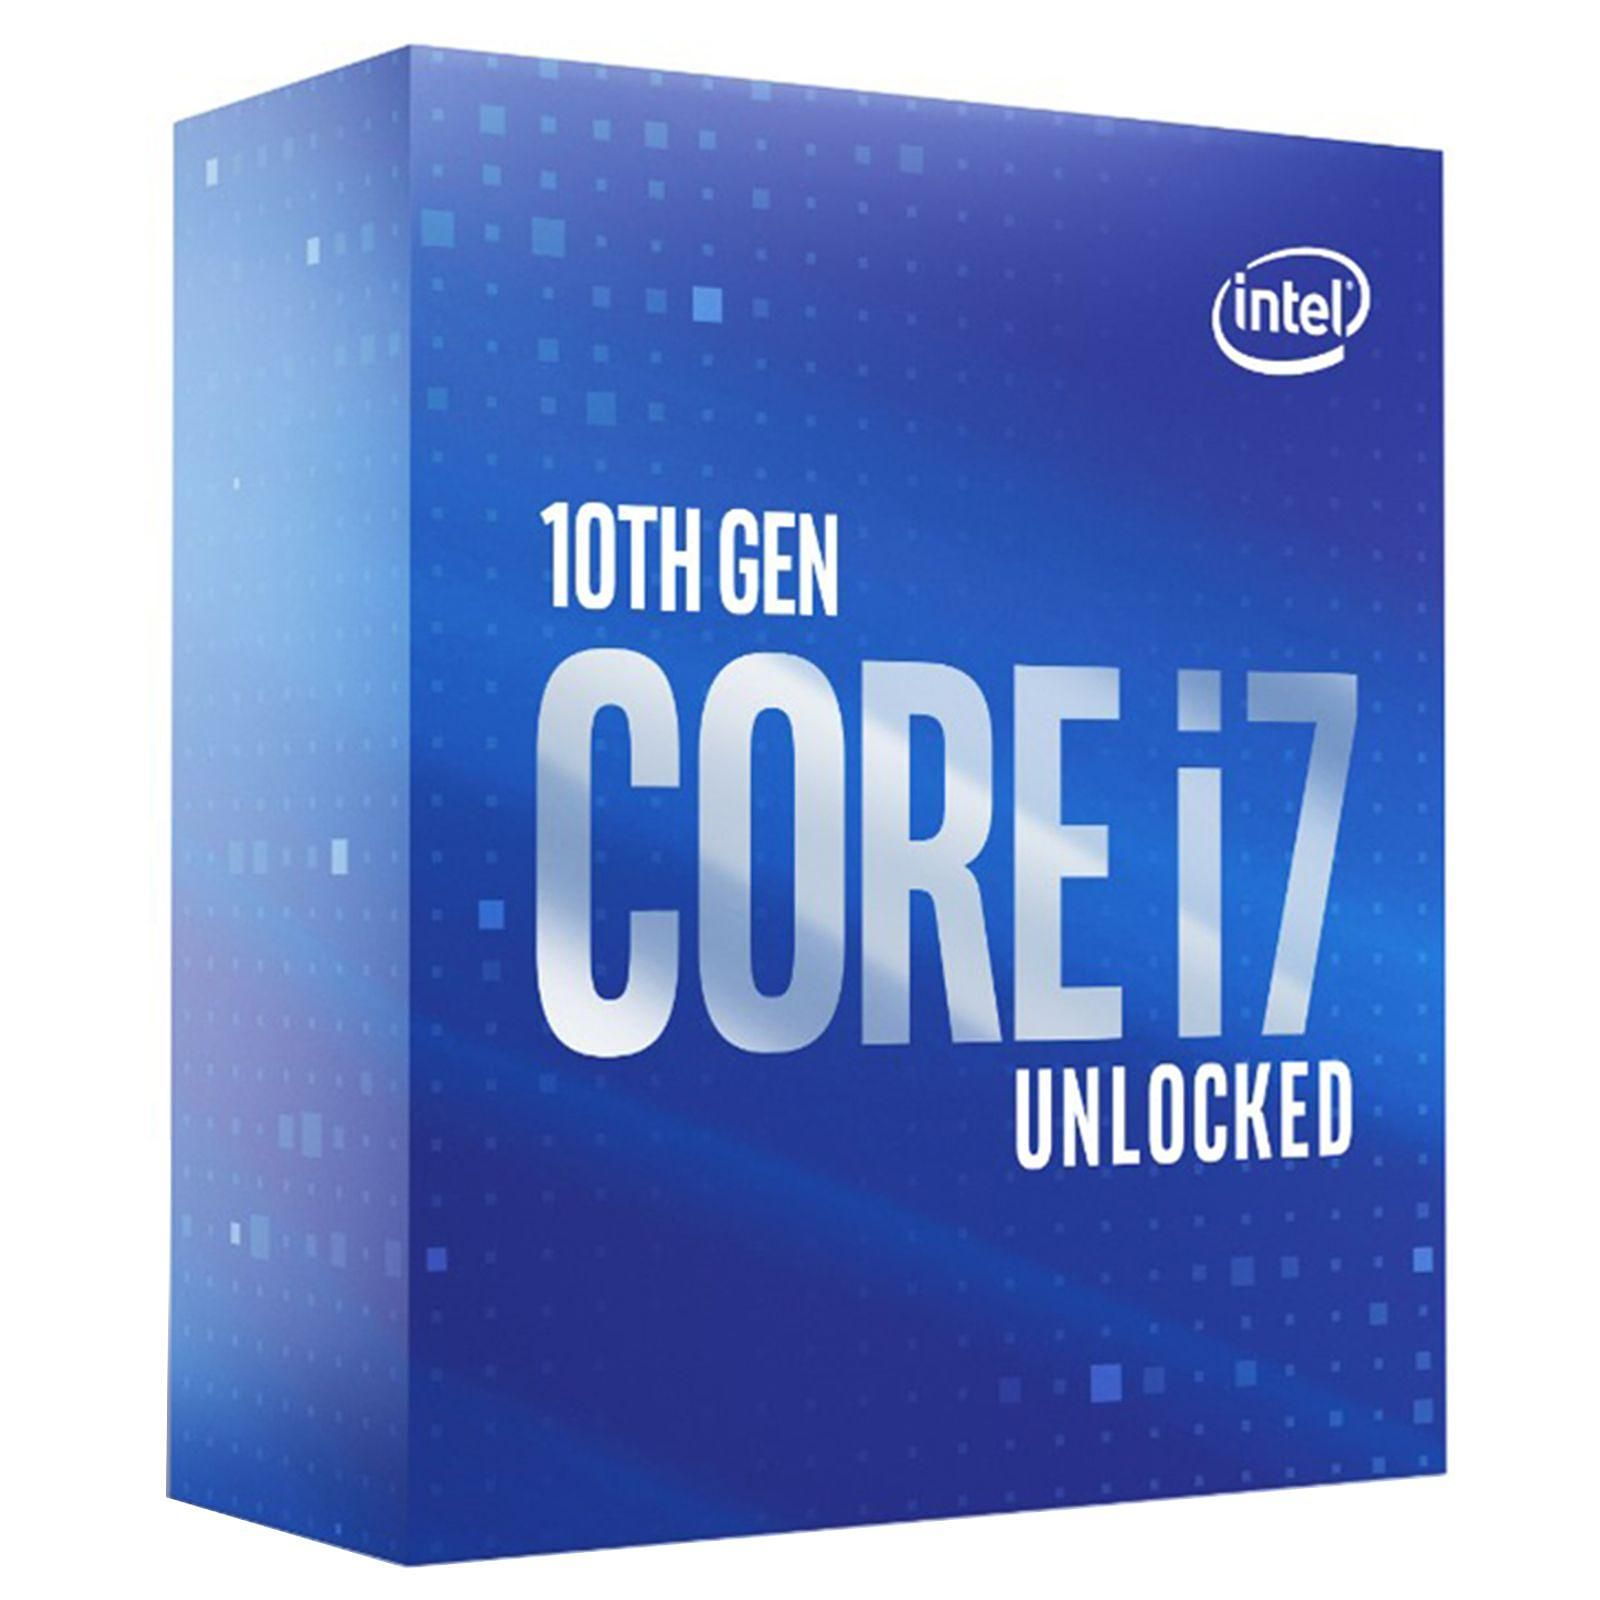 Processeur Intel Core i7 10700K 3.8 GHz / 5.1 GHz, 8 Core/16 Threads, Socket 1200, 16 Mo (Box) Sans radiateur, informatique ile de la réunion